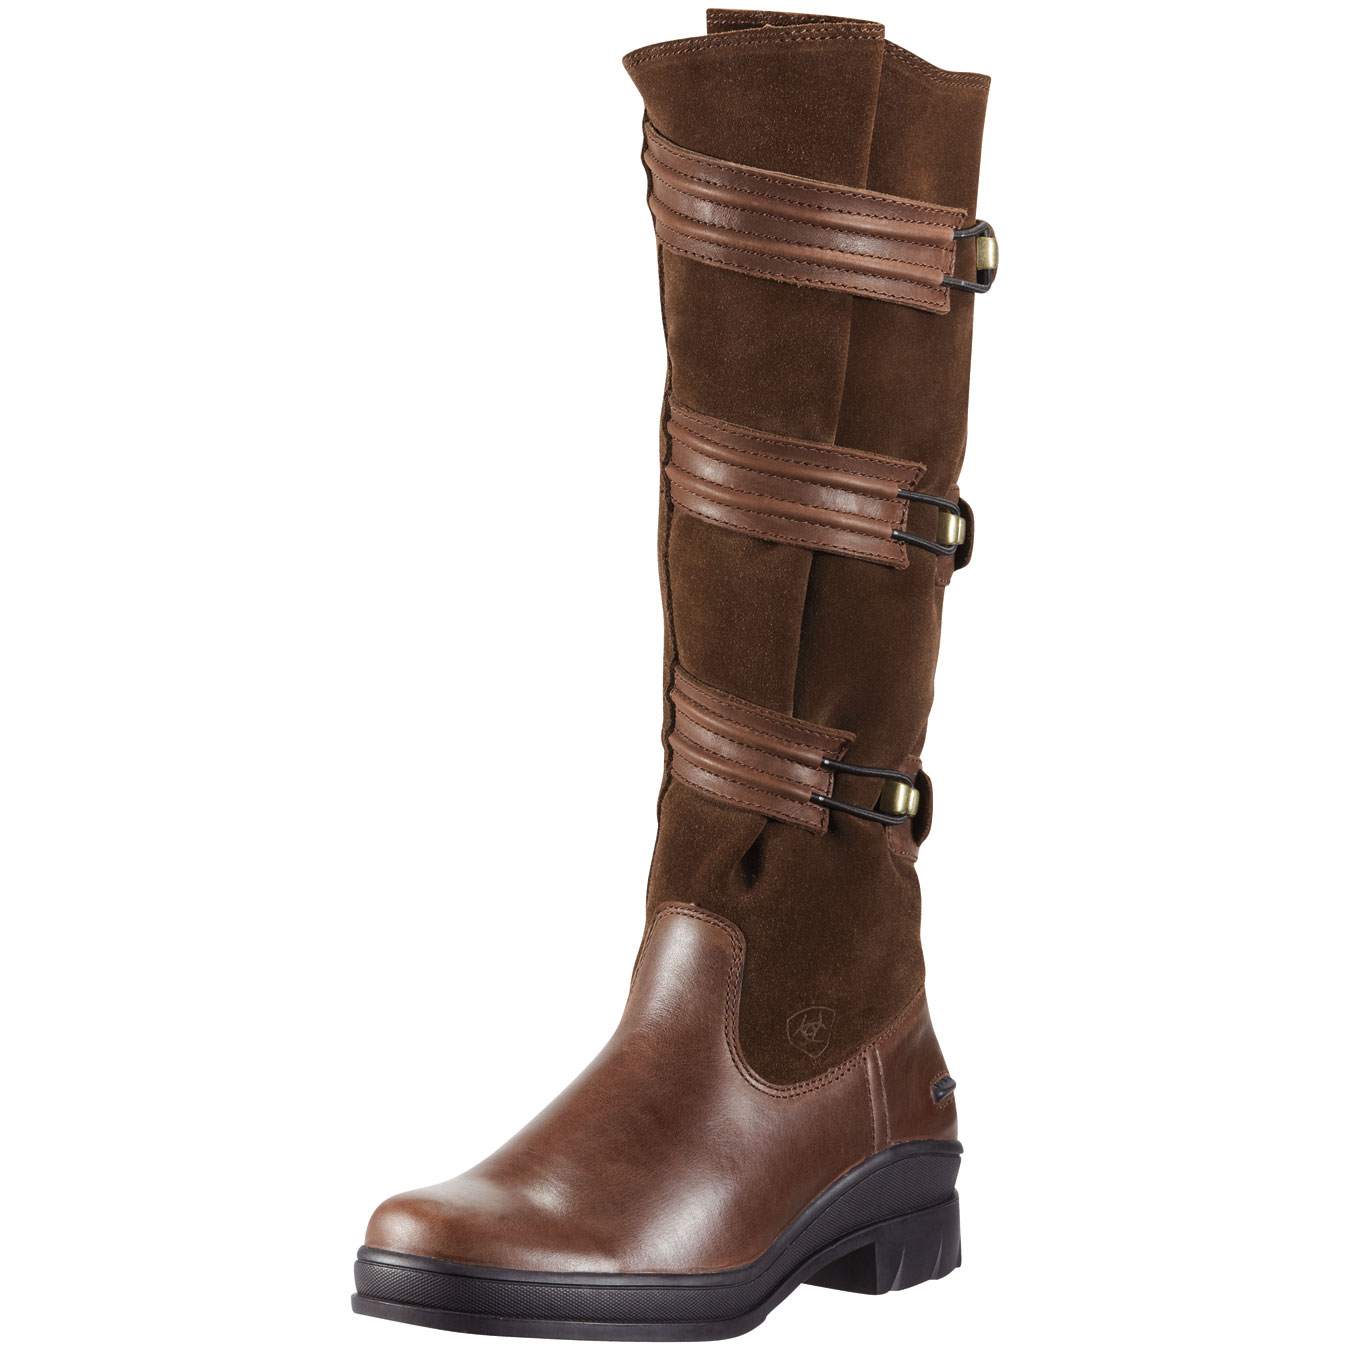 Ariat fashion riding boots